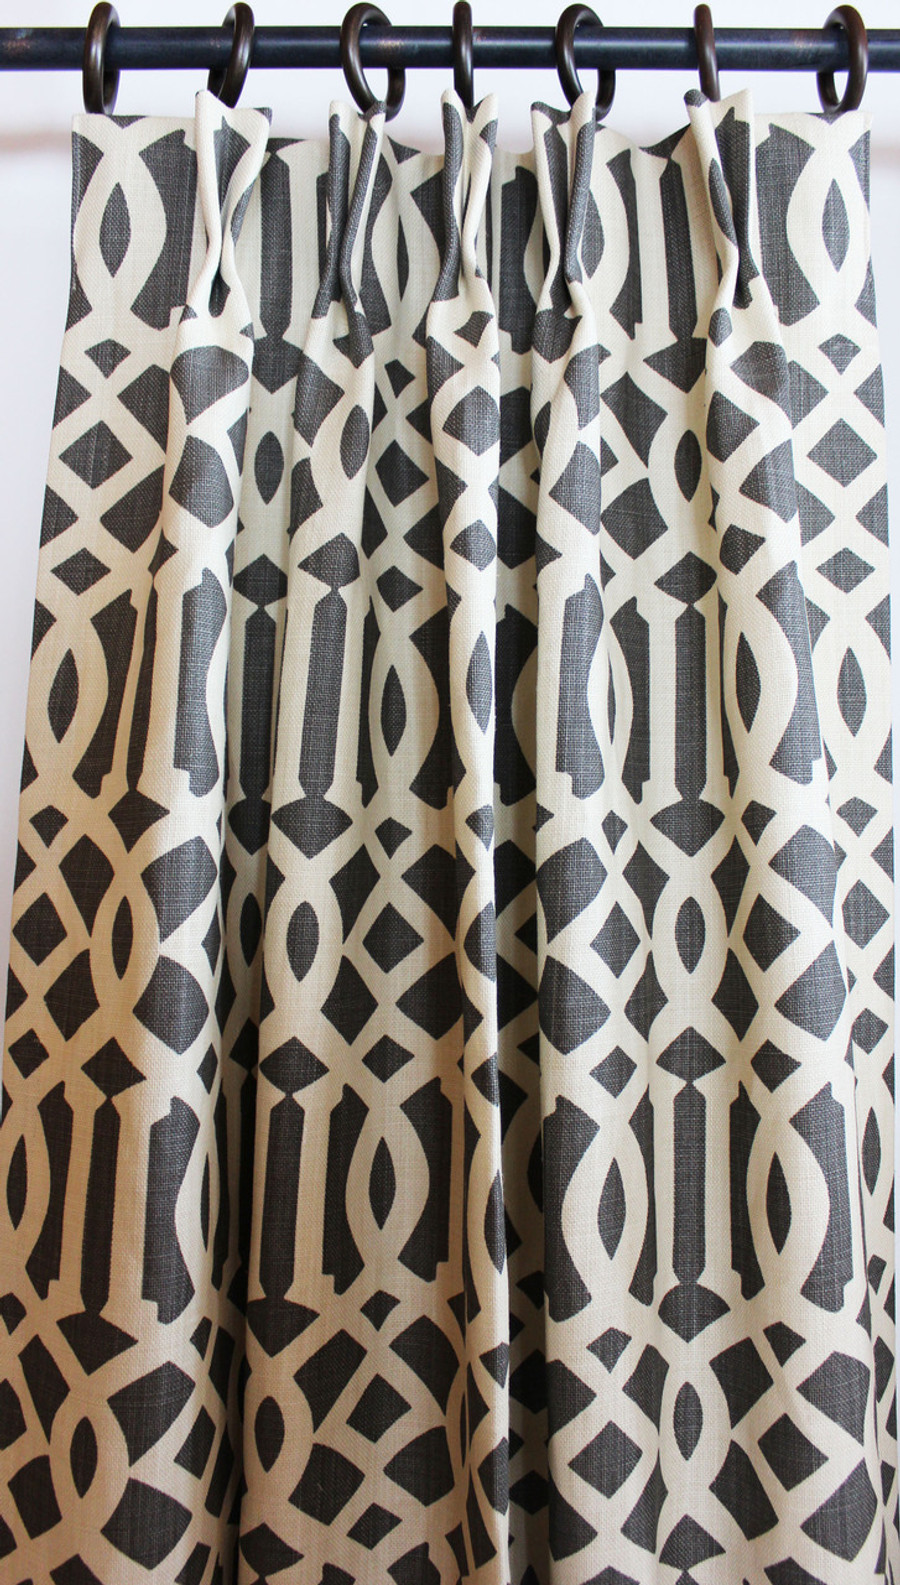 2 Finger Butterfly Pleated Drapes in Imperial Trellis in Midnight